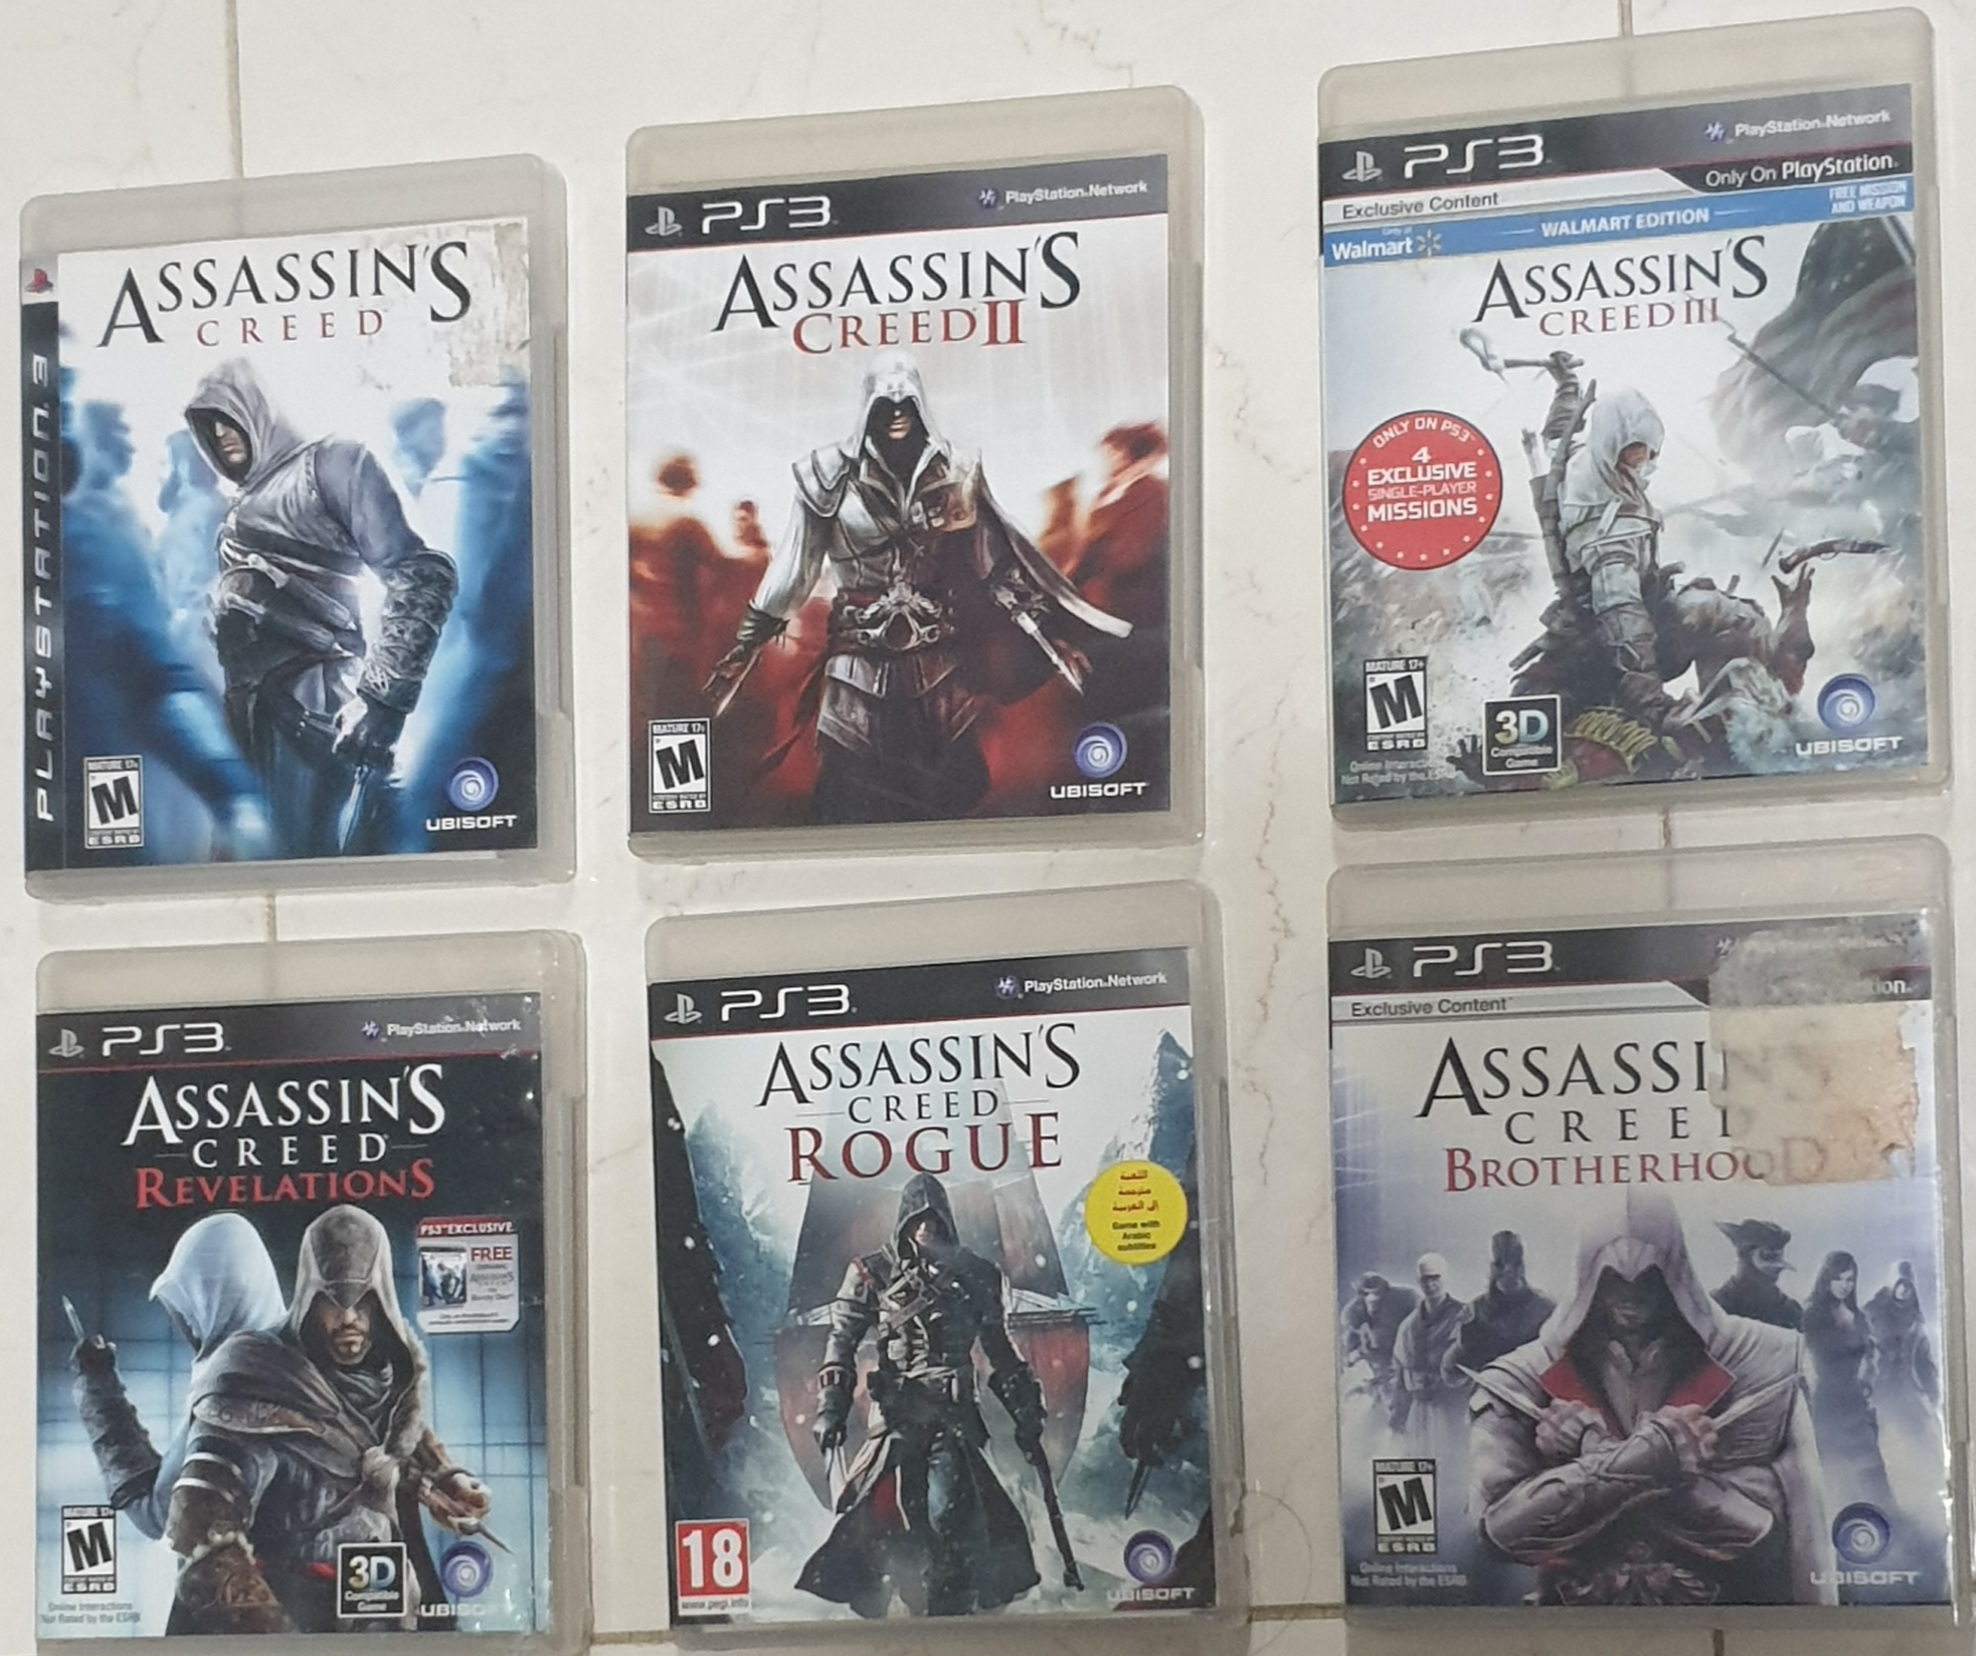 PS3 games in excellent condition for best price